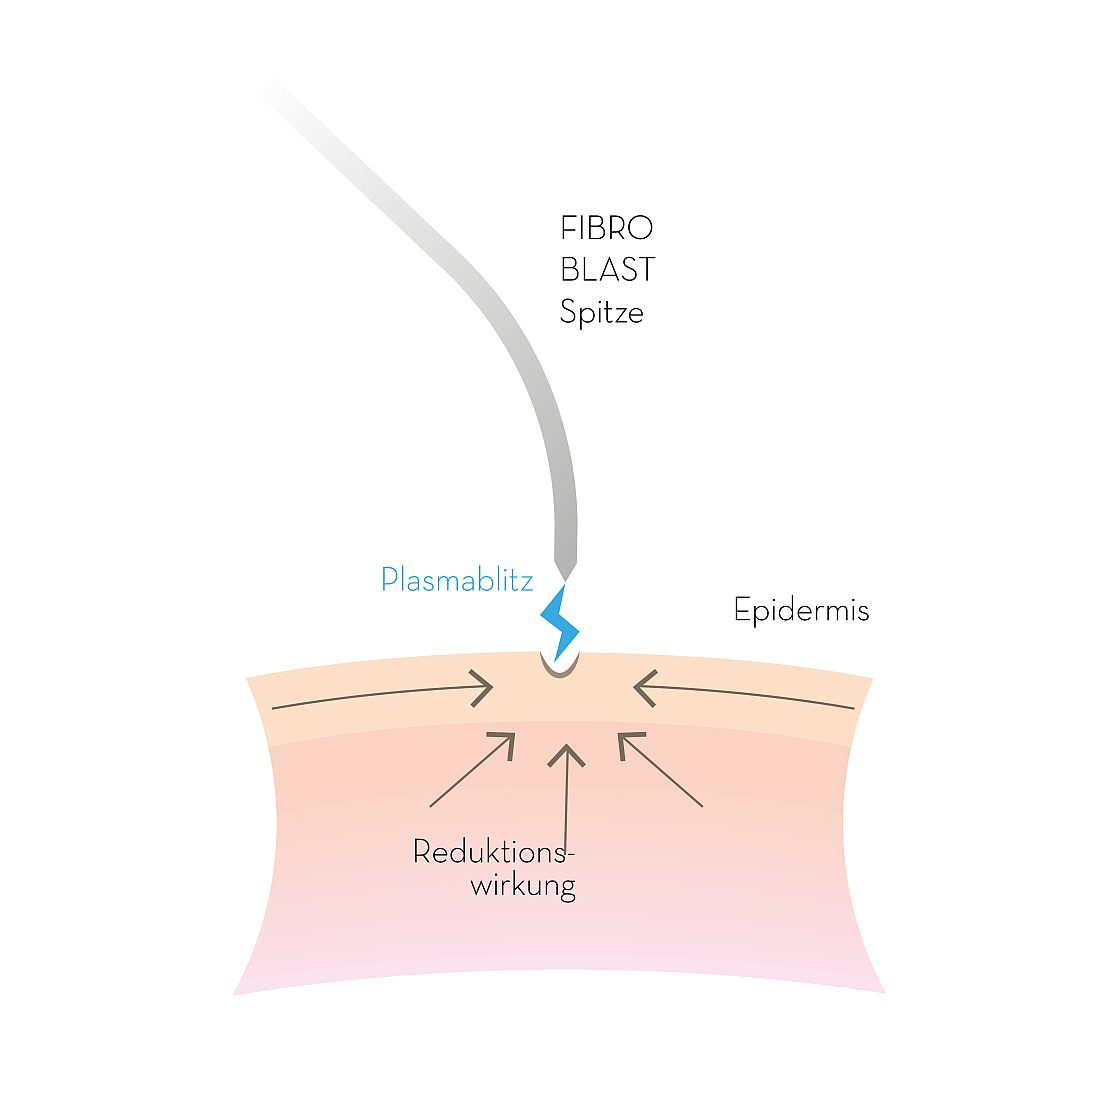 PB FIBROBLAST-Illustration_01-1120x1120